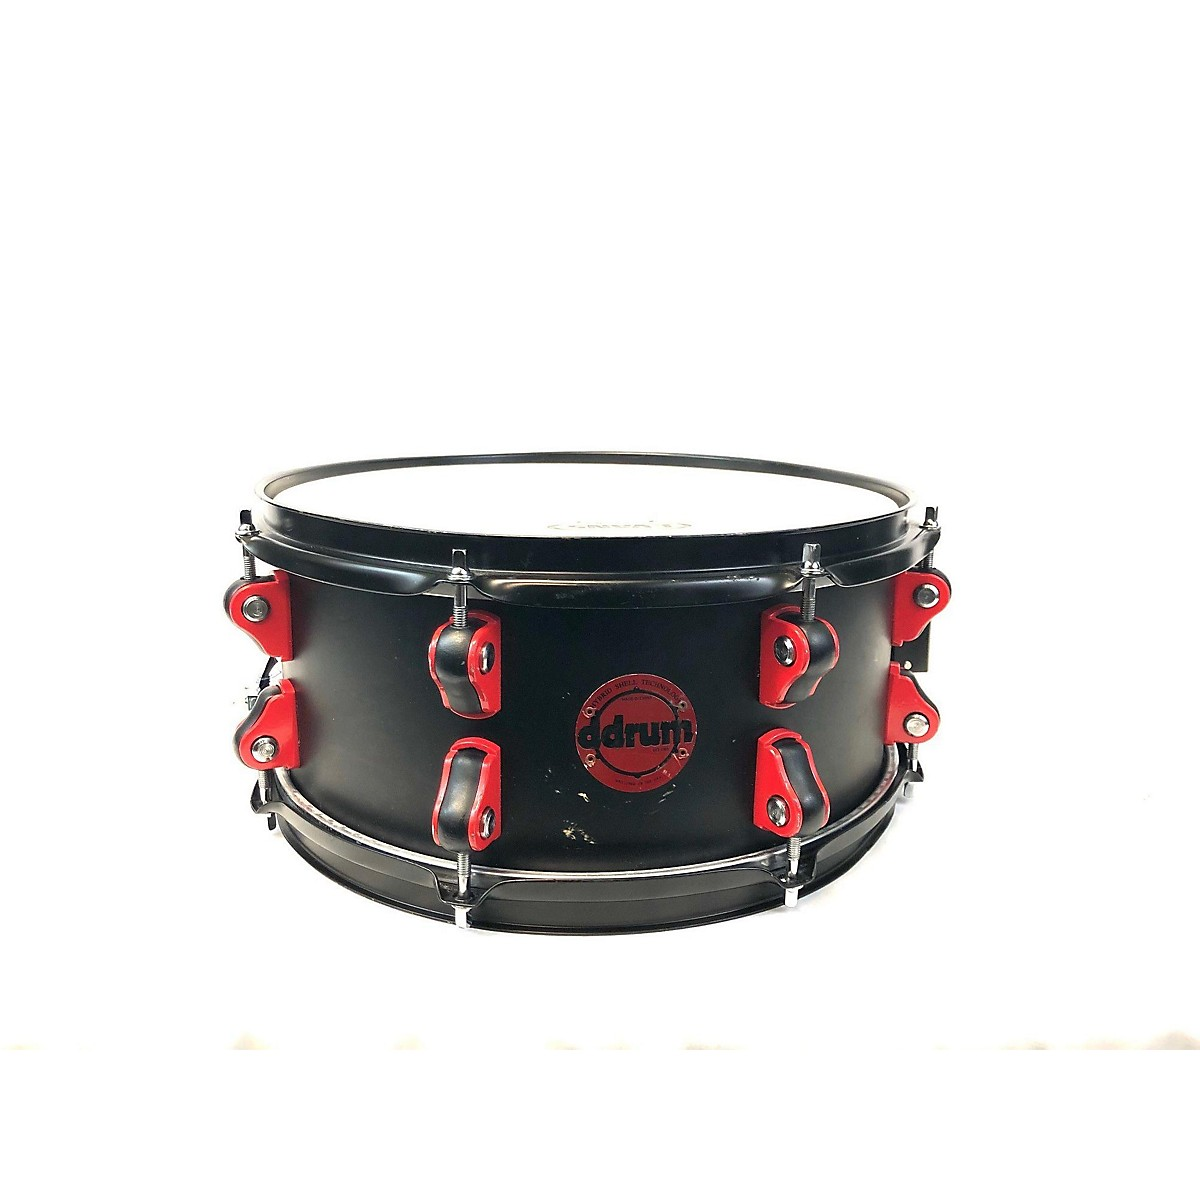 ddrum 5.5X13 Hybrid Snare Drum